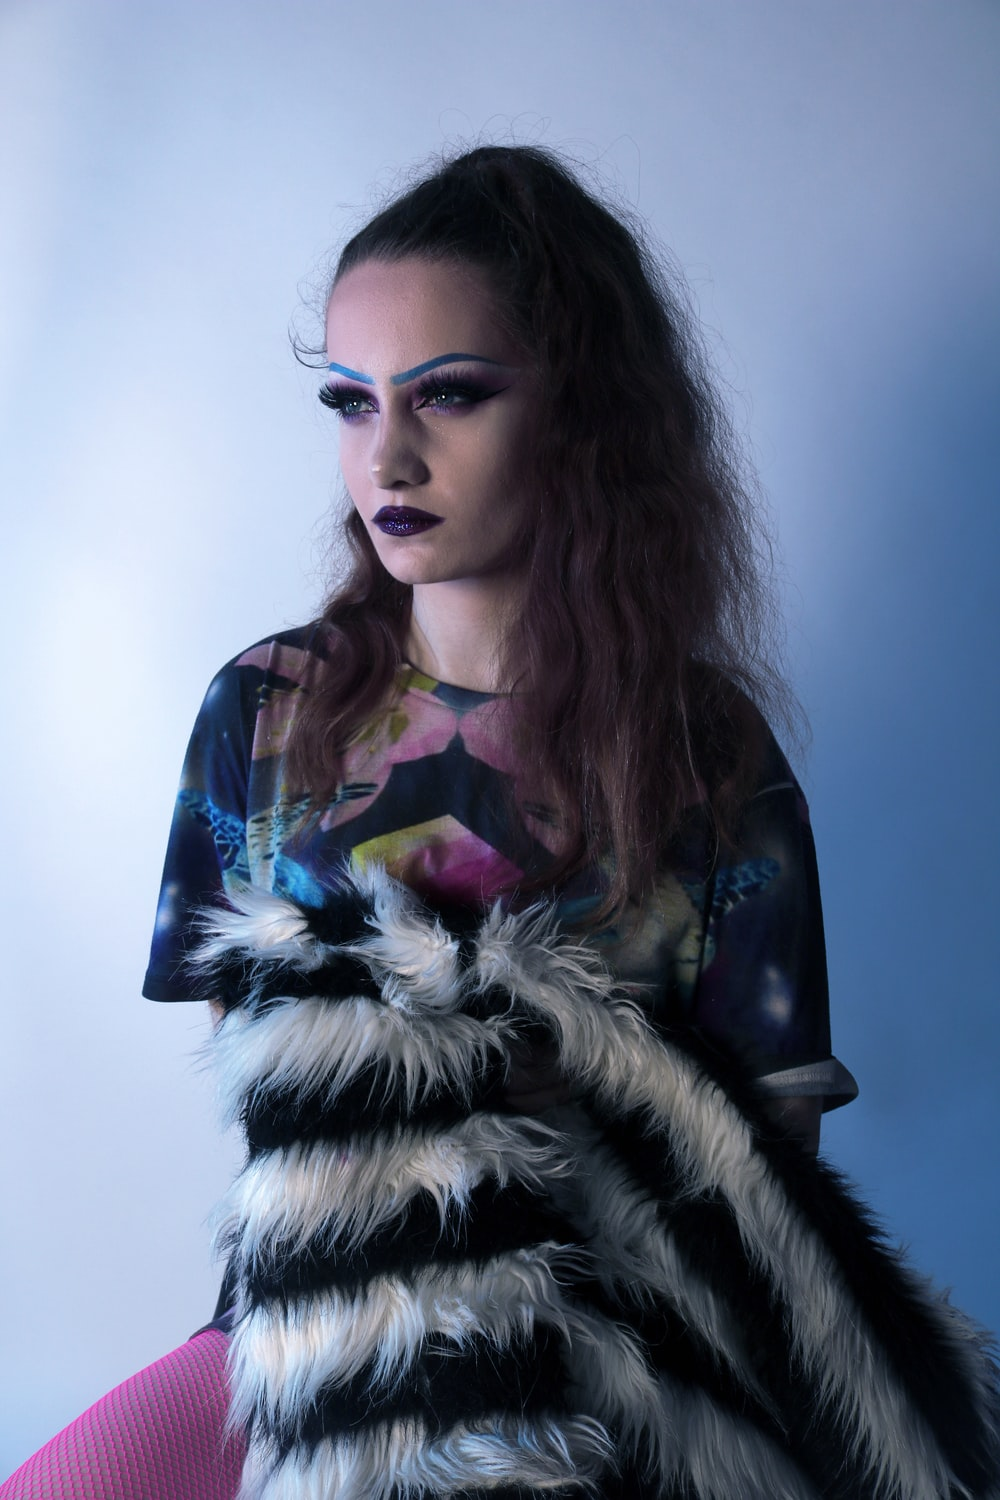 person wearing a fury dress in a room close-up photography